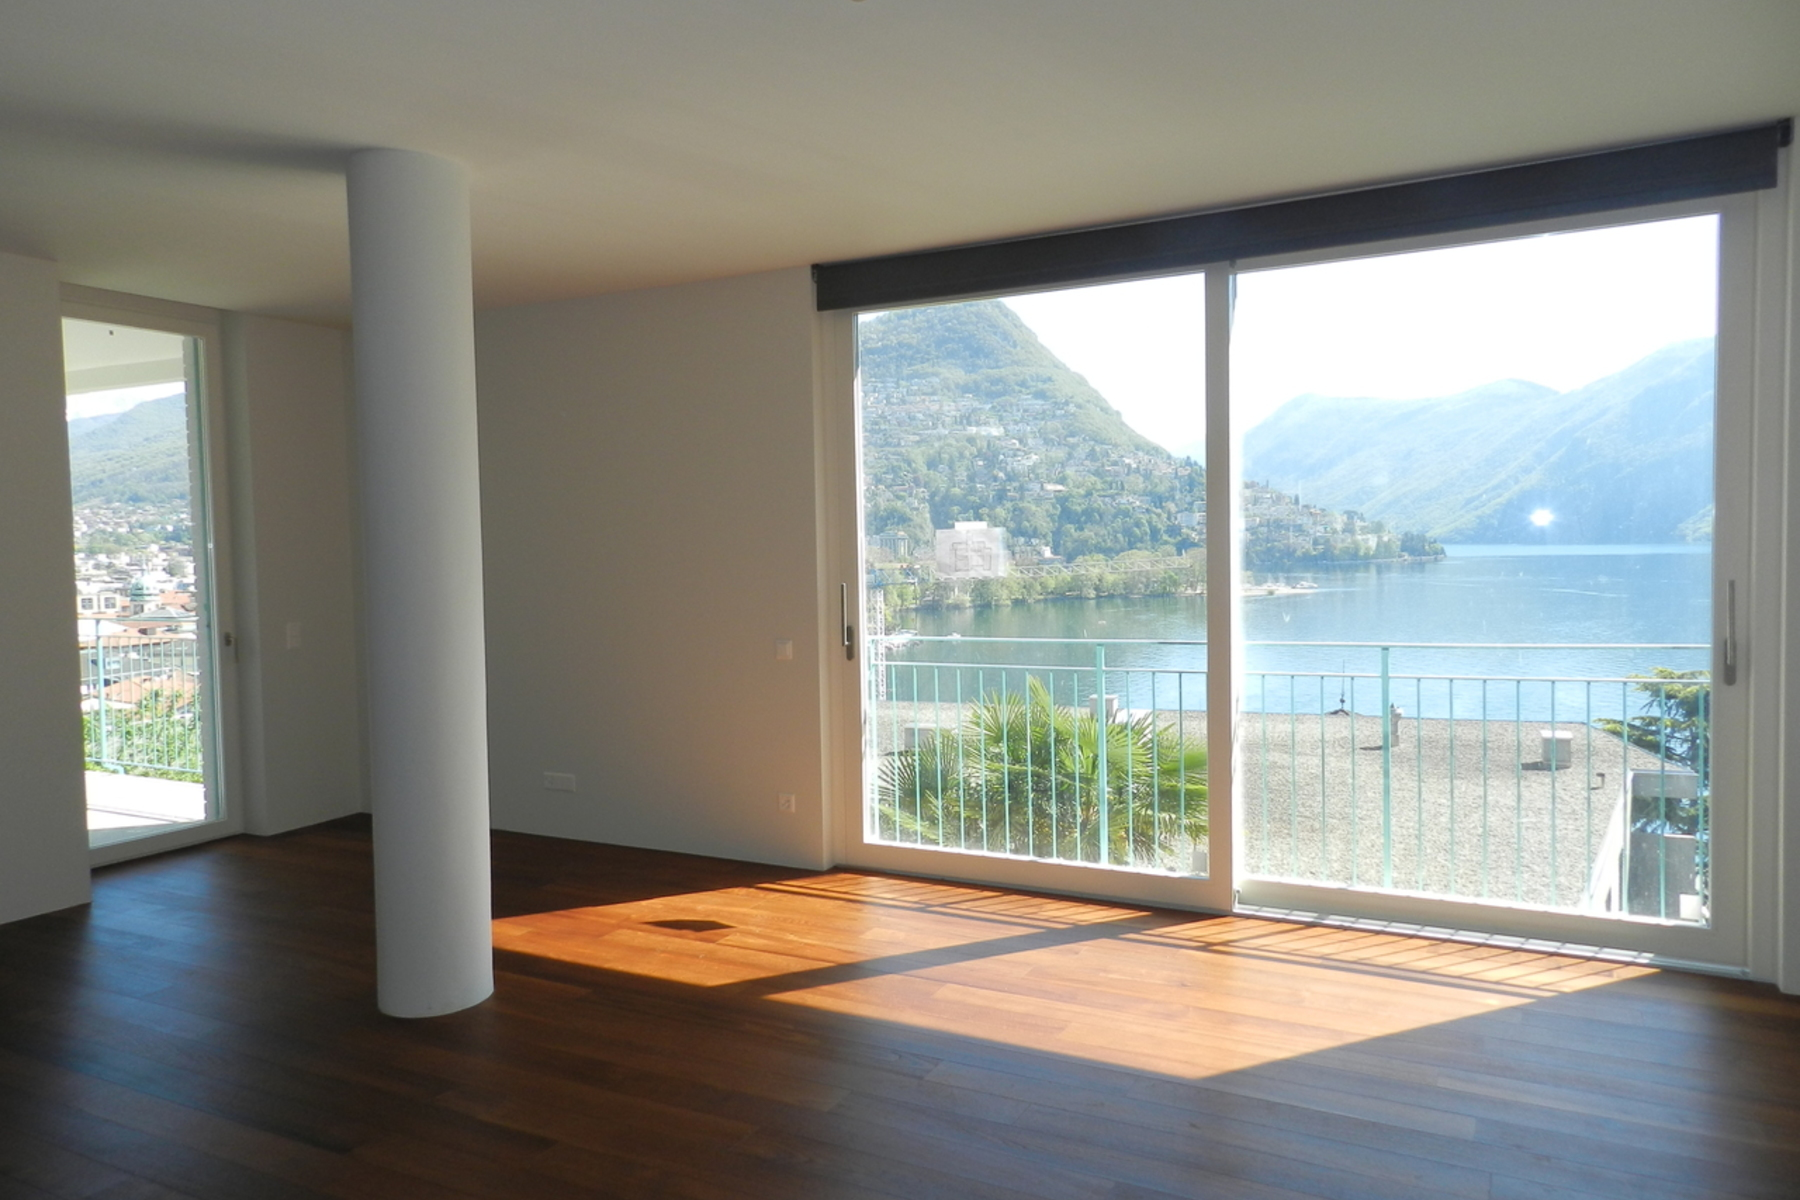 アパート のために 売買 アット Apartment with spectacular lake view Lugano, Lugano, Ticino, 6900 スイス